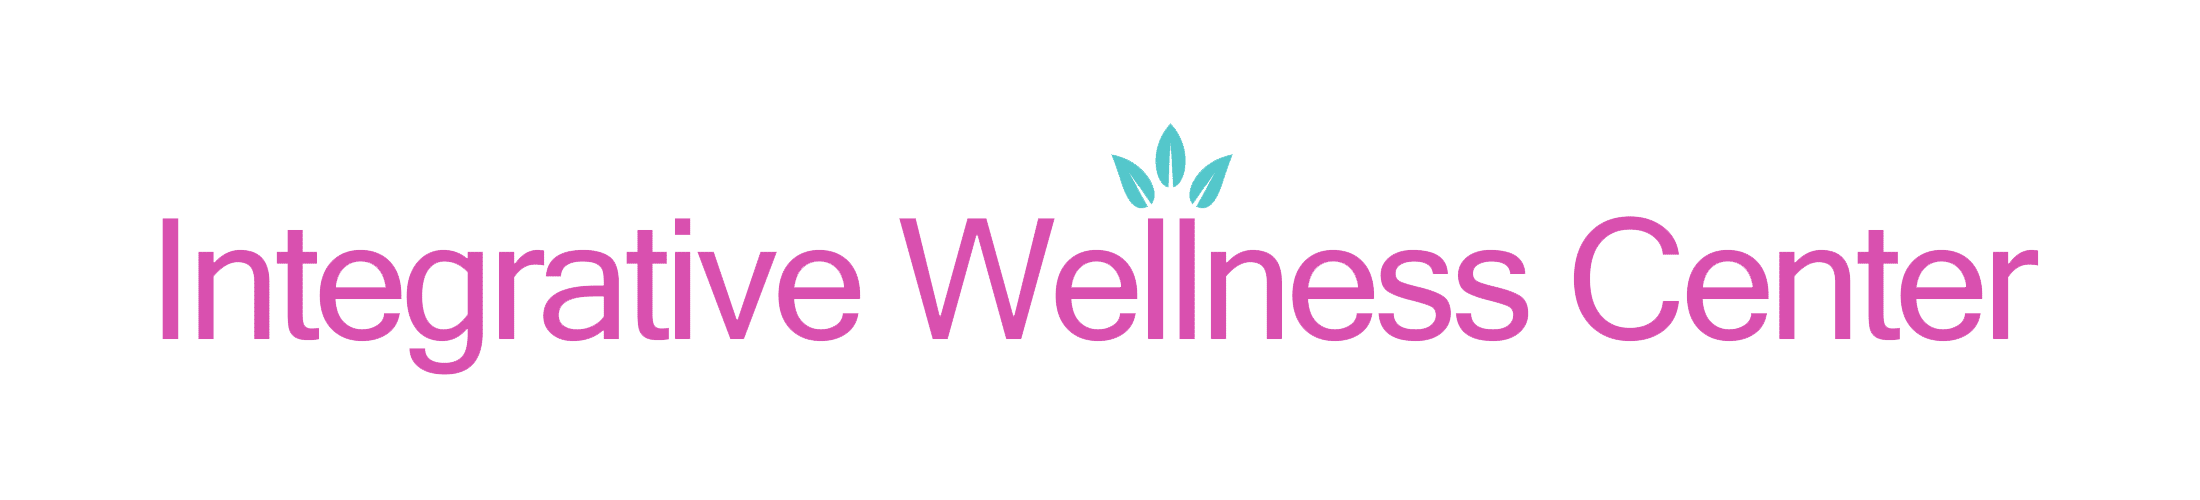 Integrative Wellness Center